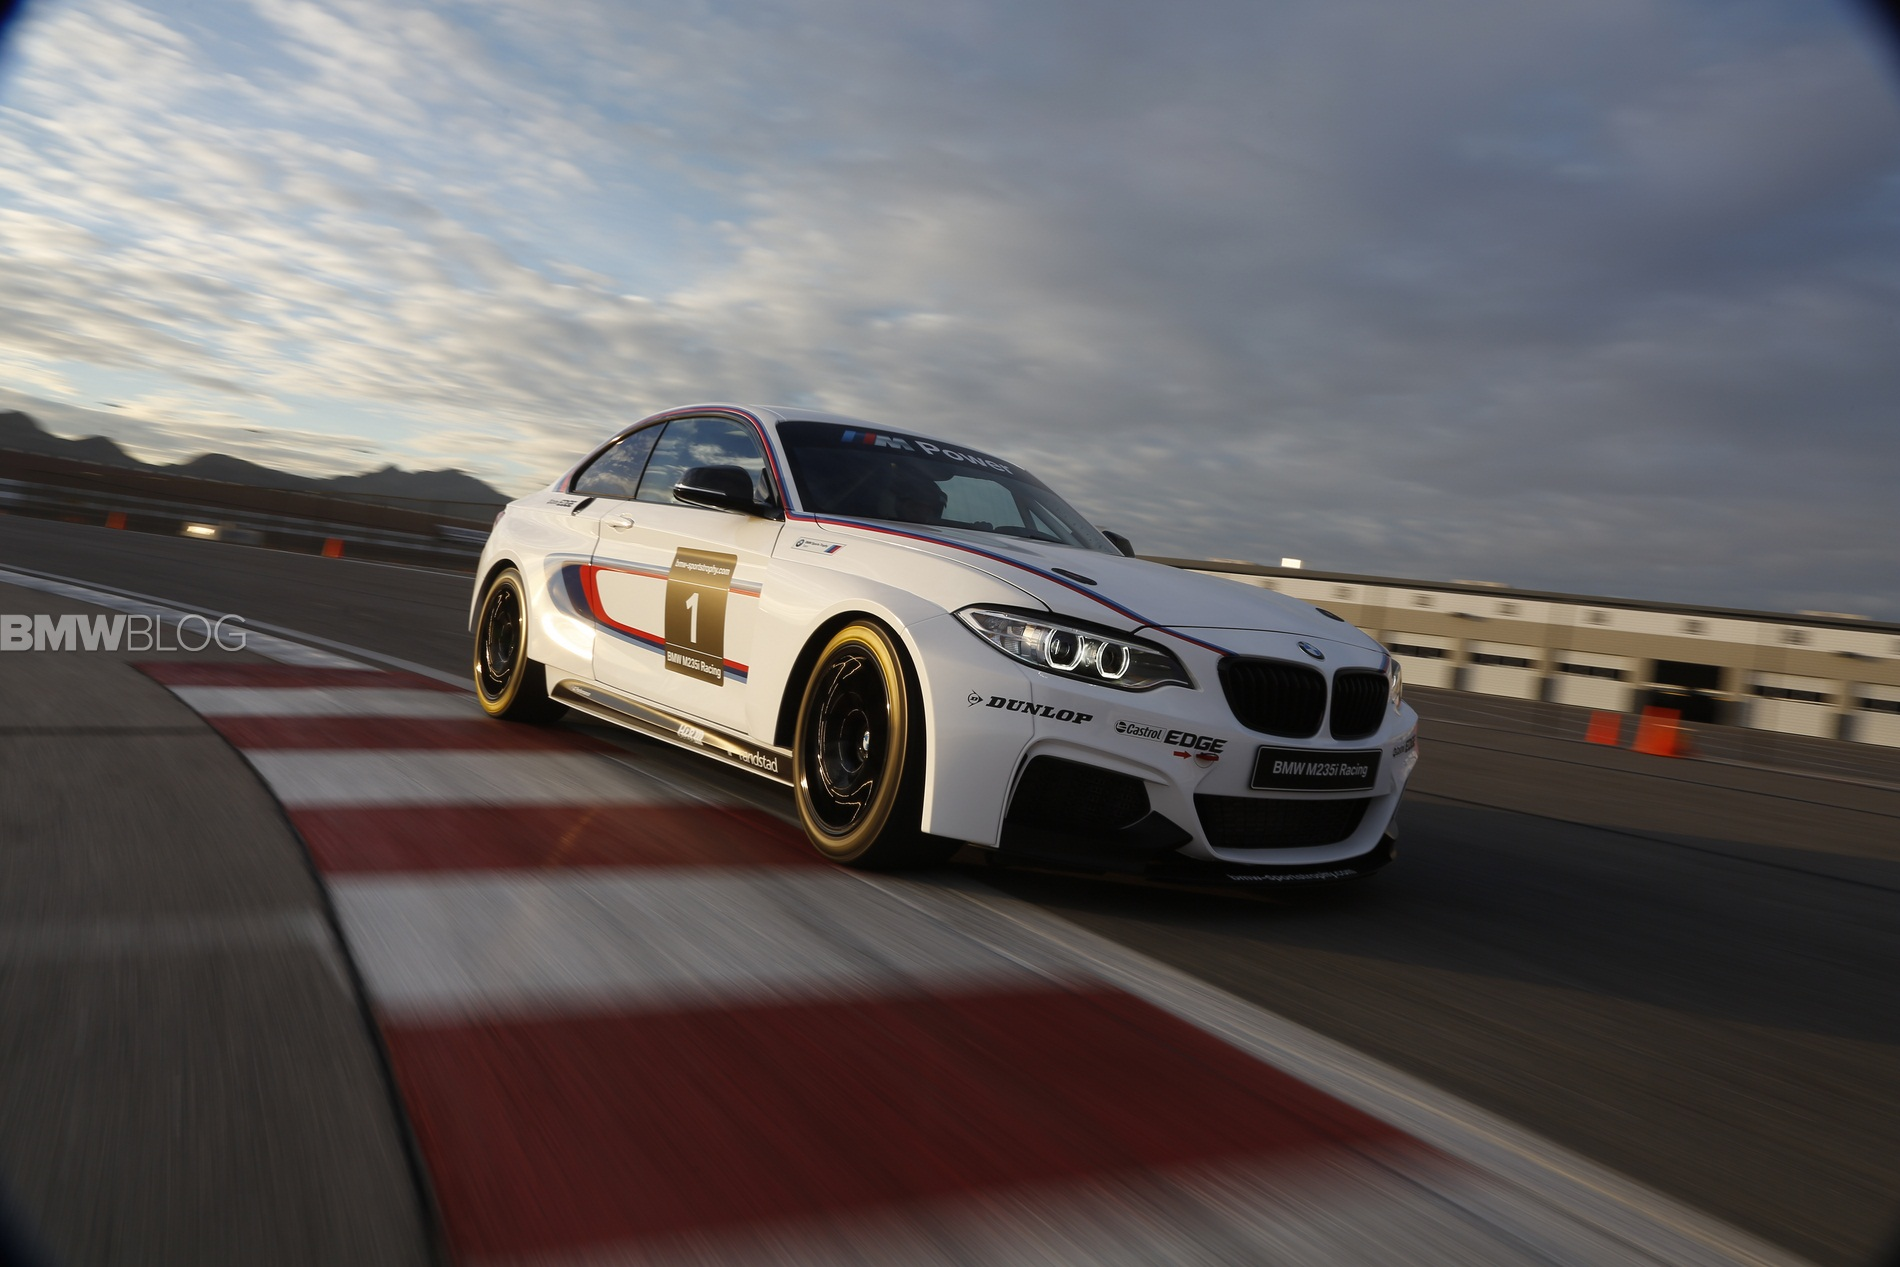 BMW M235i Racing: Video shows Race Car assembly in Leipzig